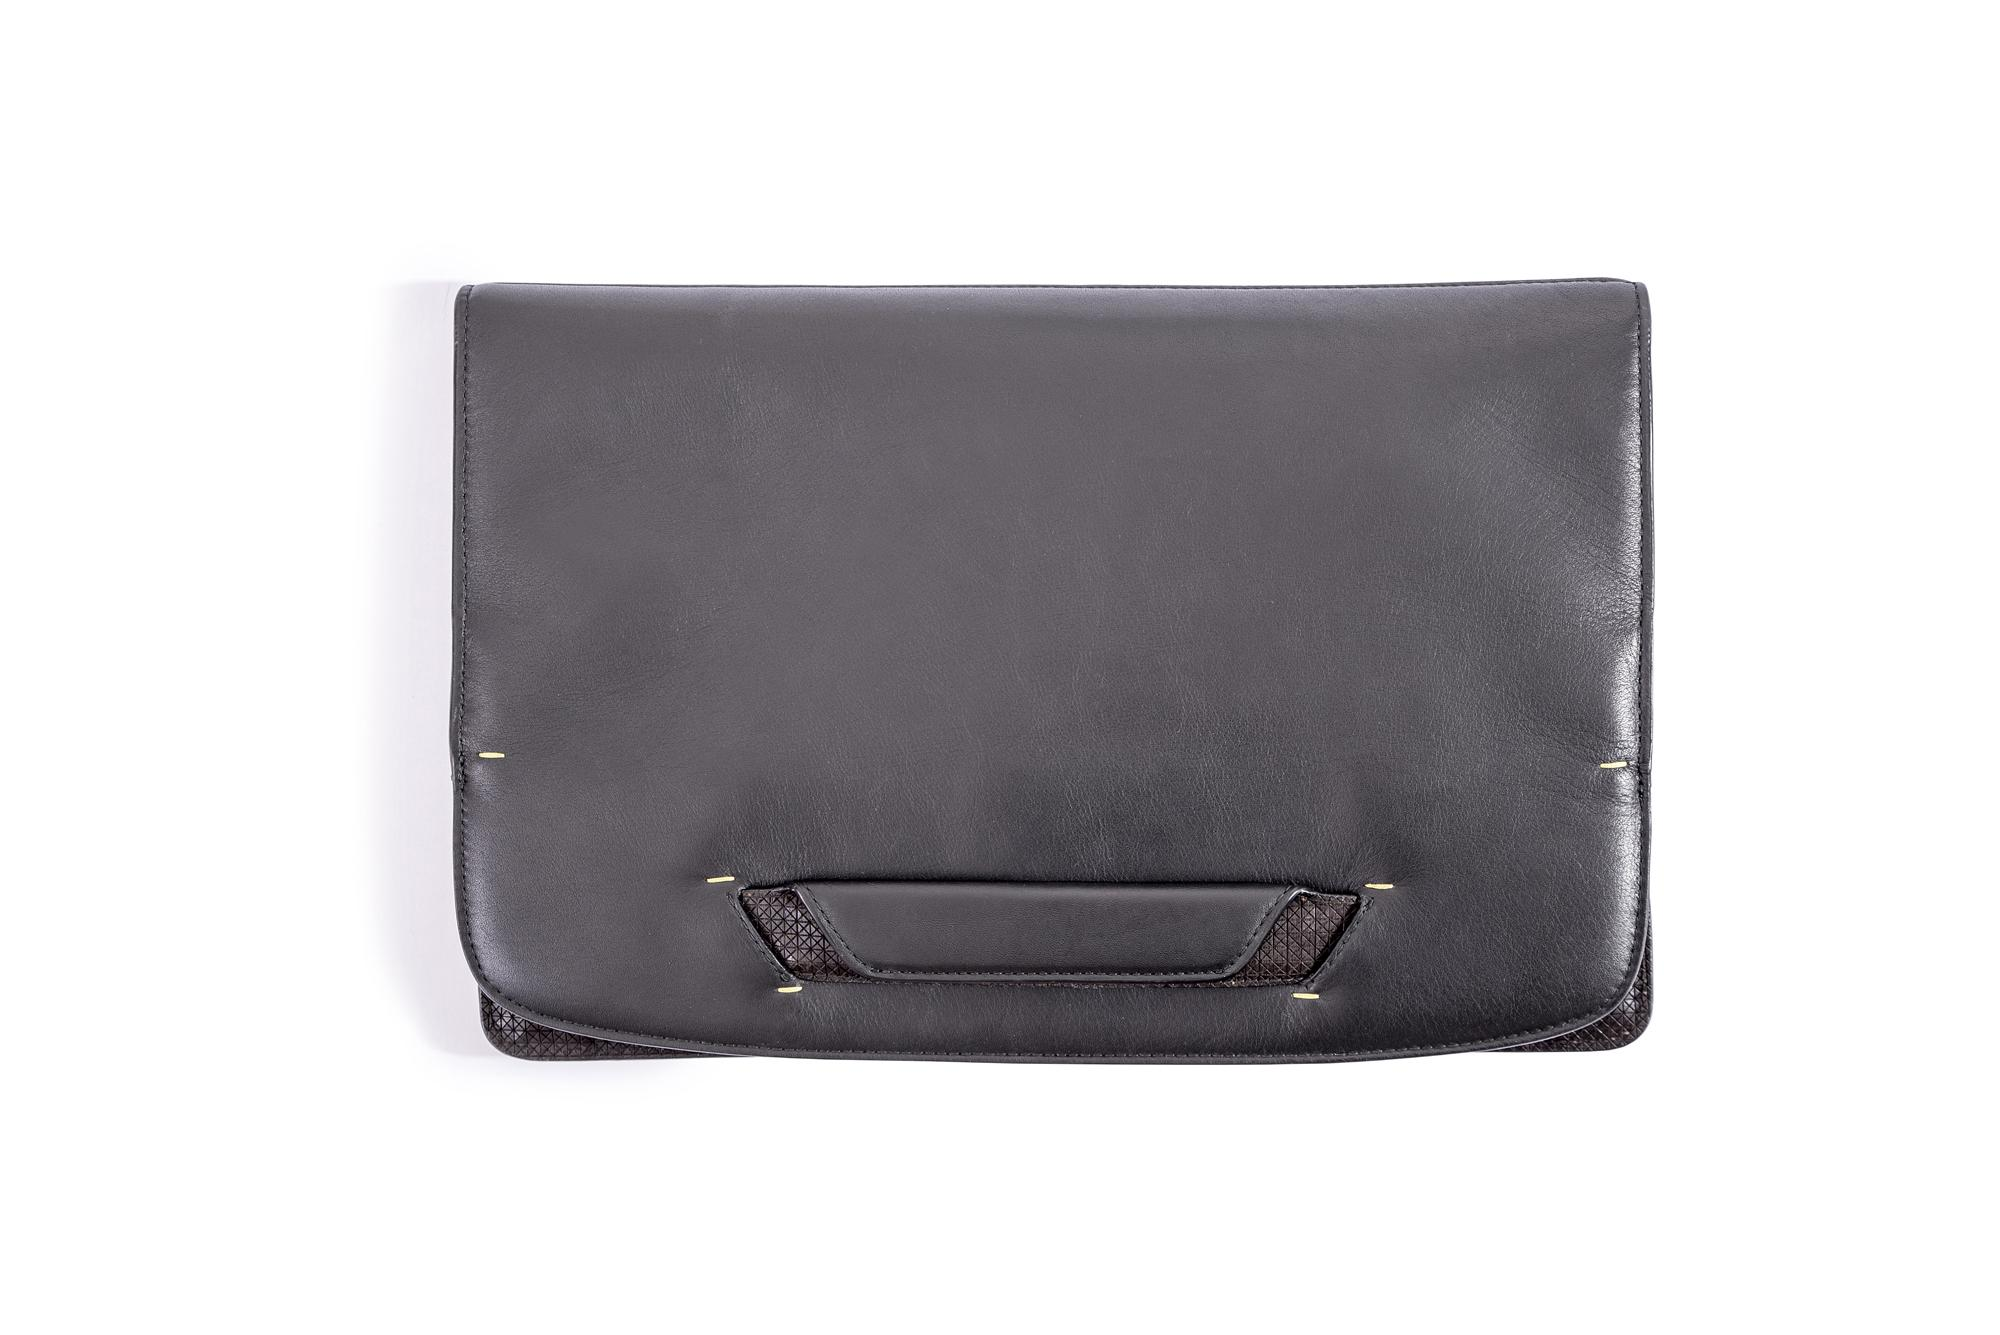 Bag Folio By Pininfarina Nero